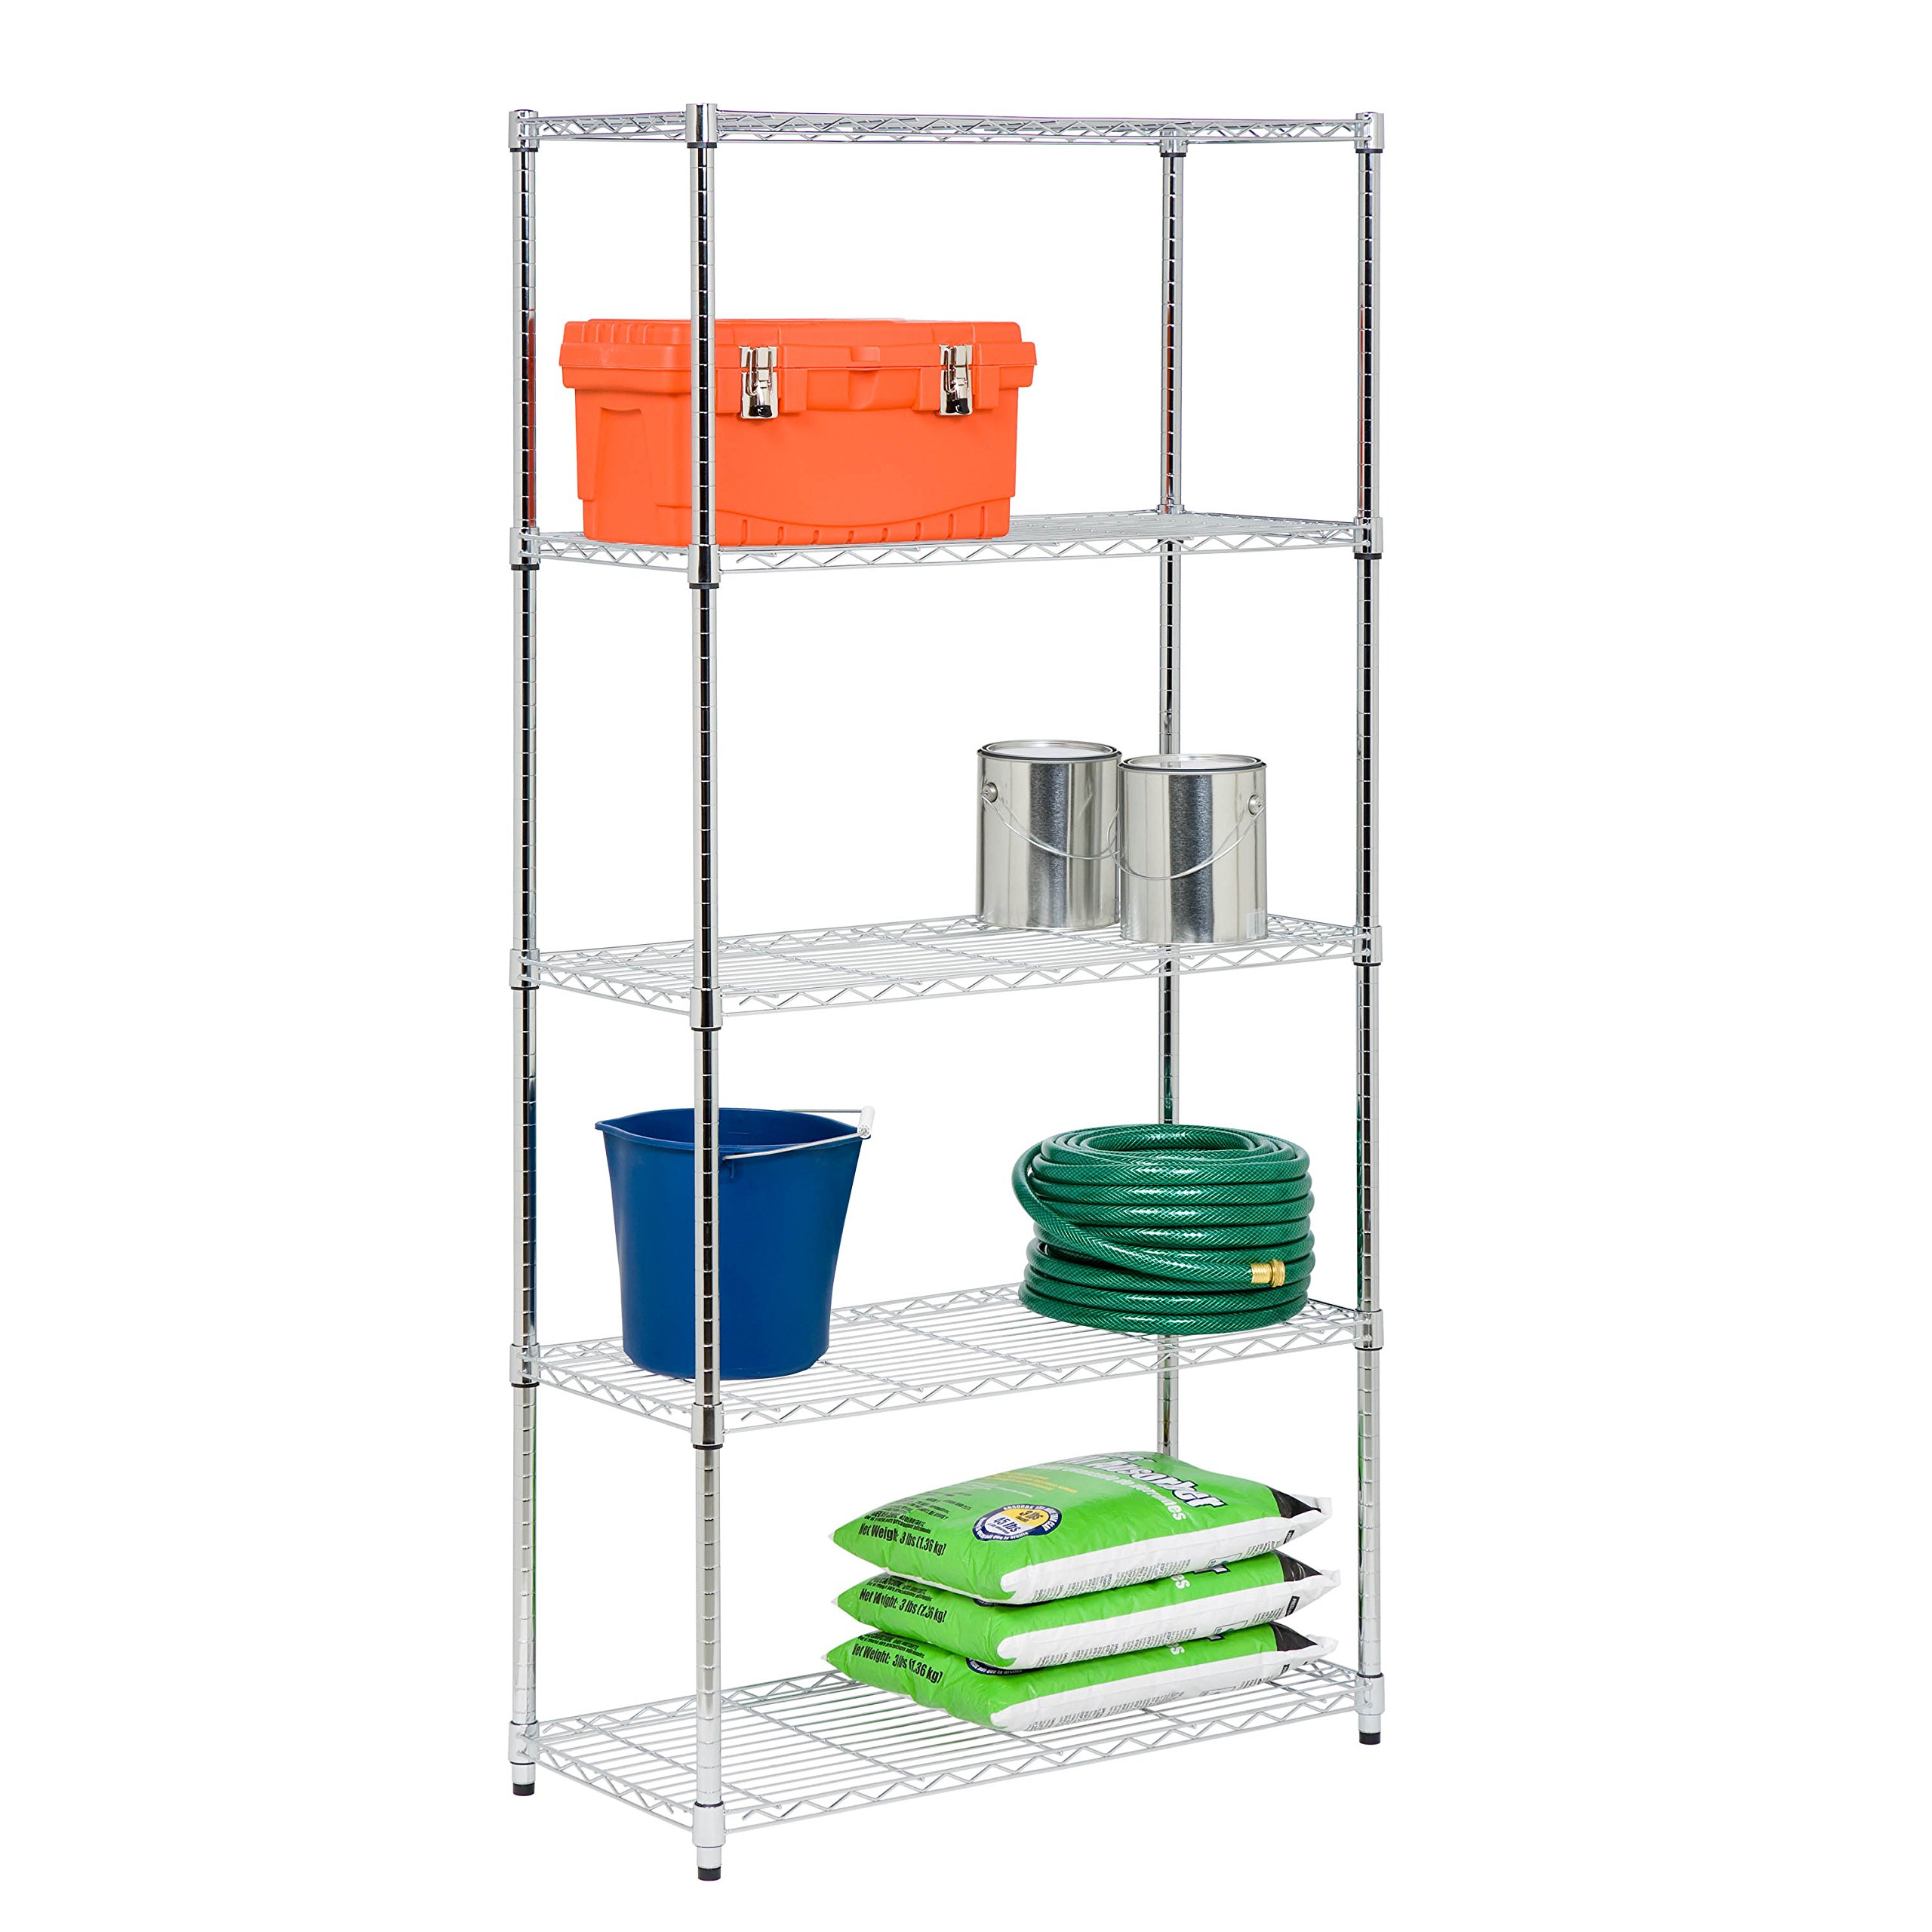 Honey-Can-Do SHF-06832 5-Tier Black Storage Shelves 18-Inches x 36-Inches x 72-Inches, Chrome Plated